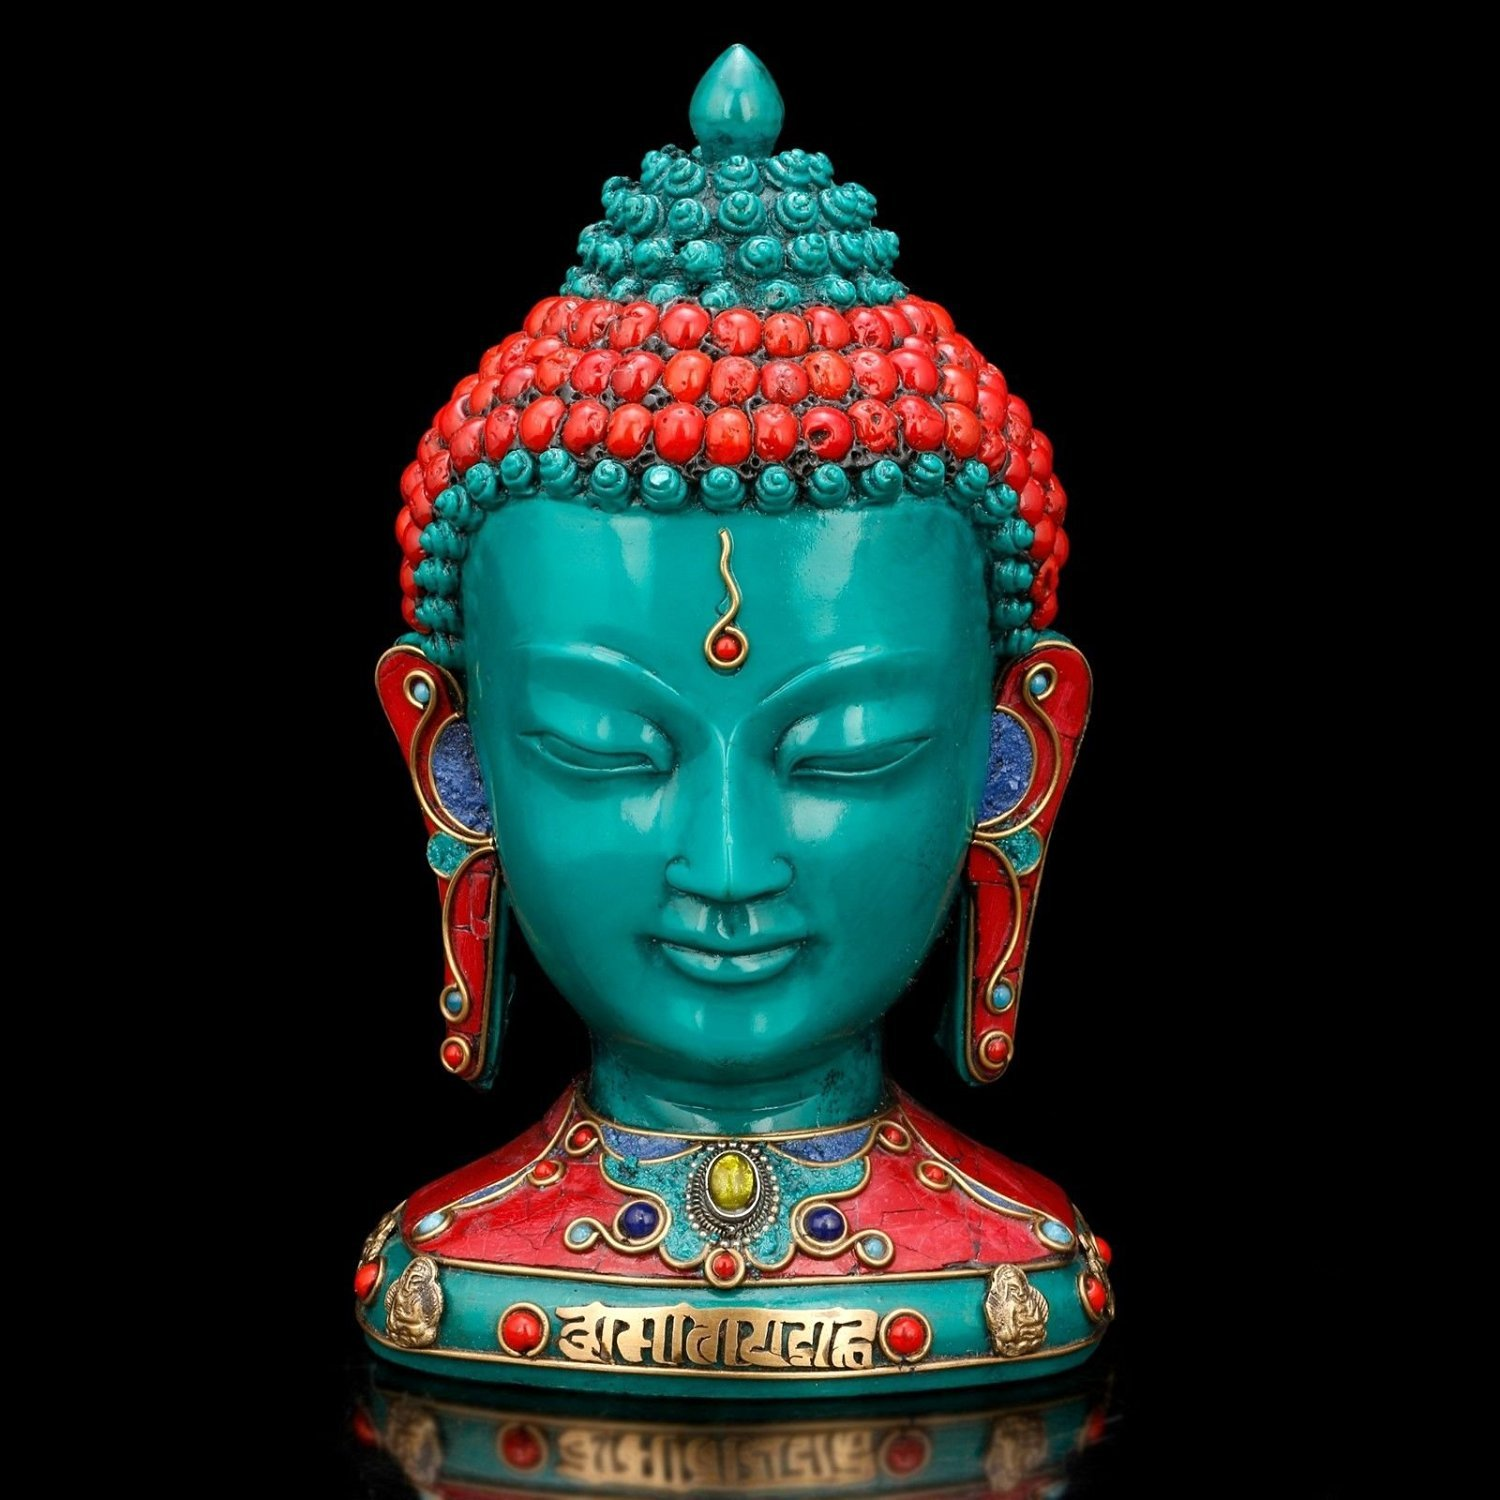 AapnoCraft Thai Buddha Bust Statue Nepali Handmade Buddha Head Sculpture Colourful Statue Of Shakyamuni Buddha Face